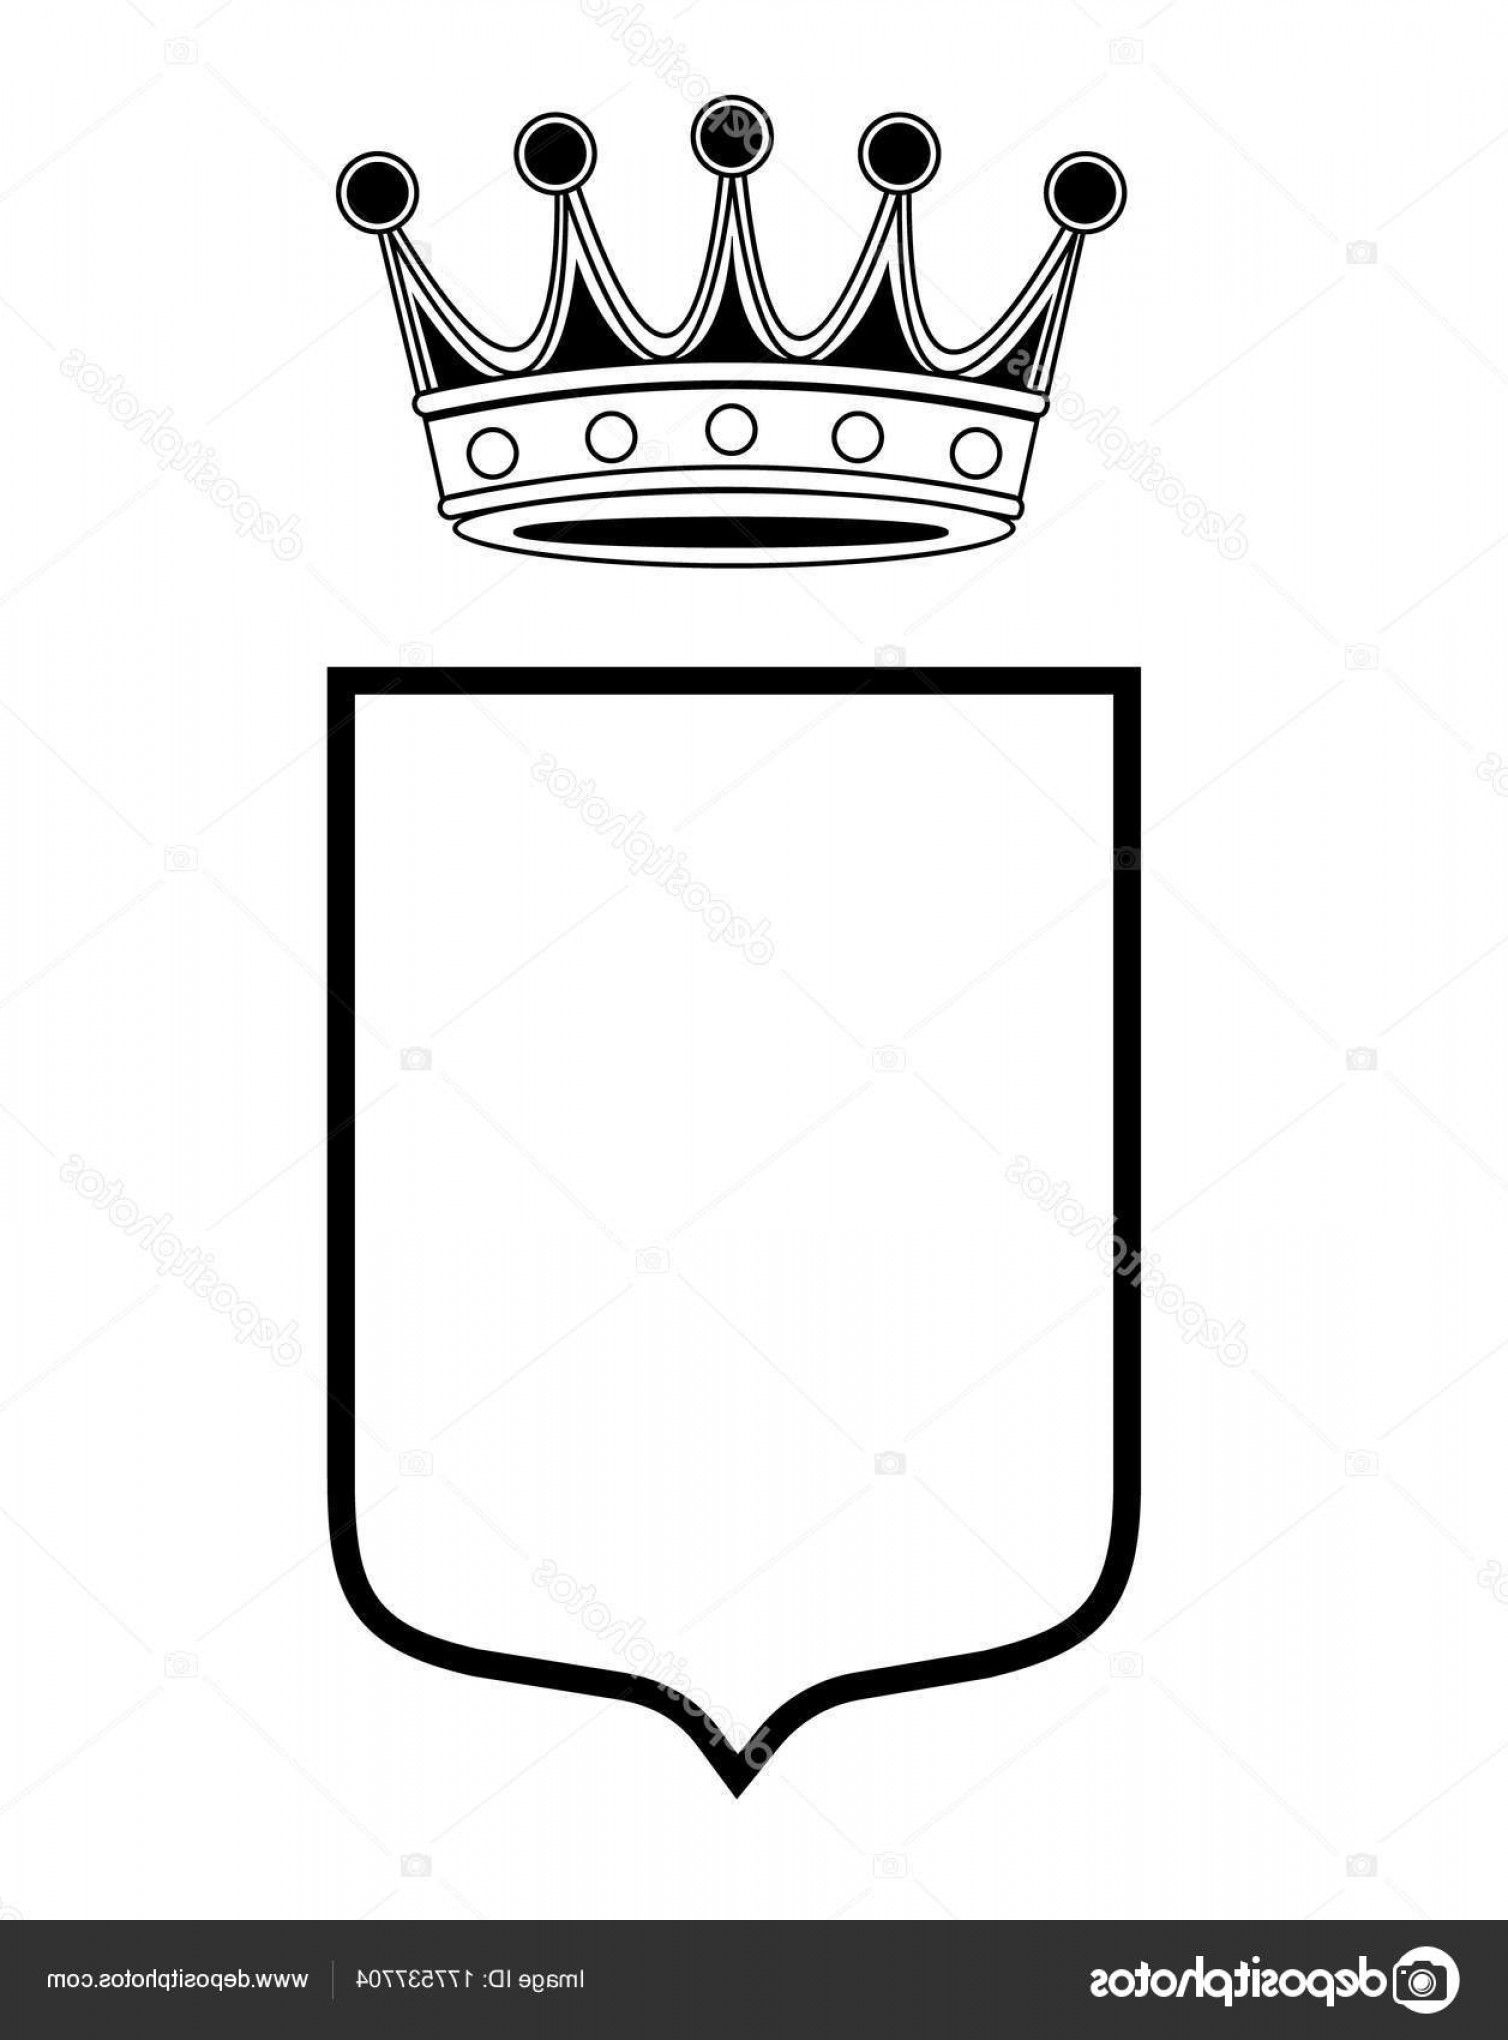 Crest And Coat Of Arms Vector Silhouette: Stock Illustration Family Shield Template Crown Coat